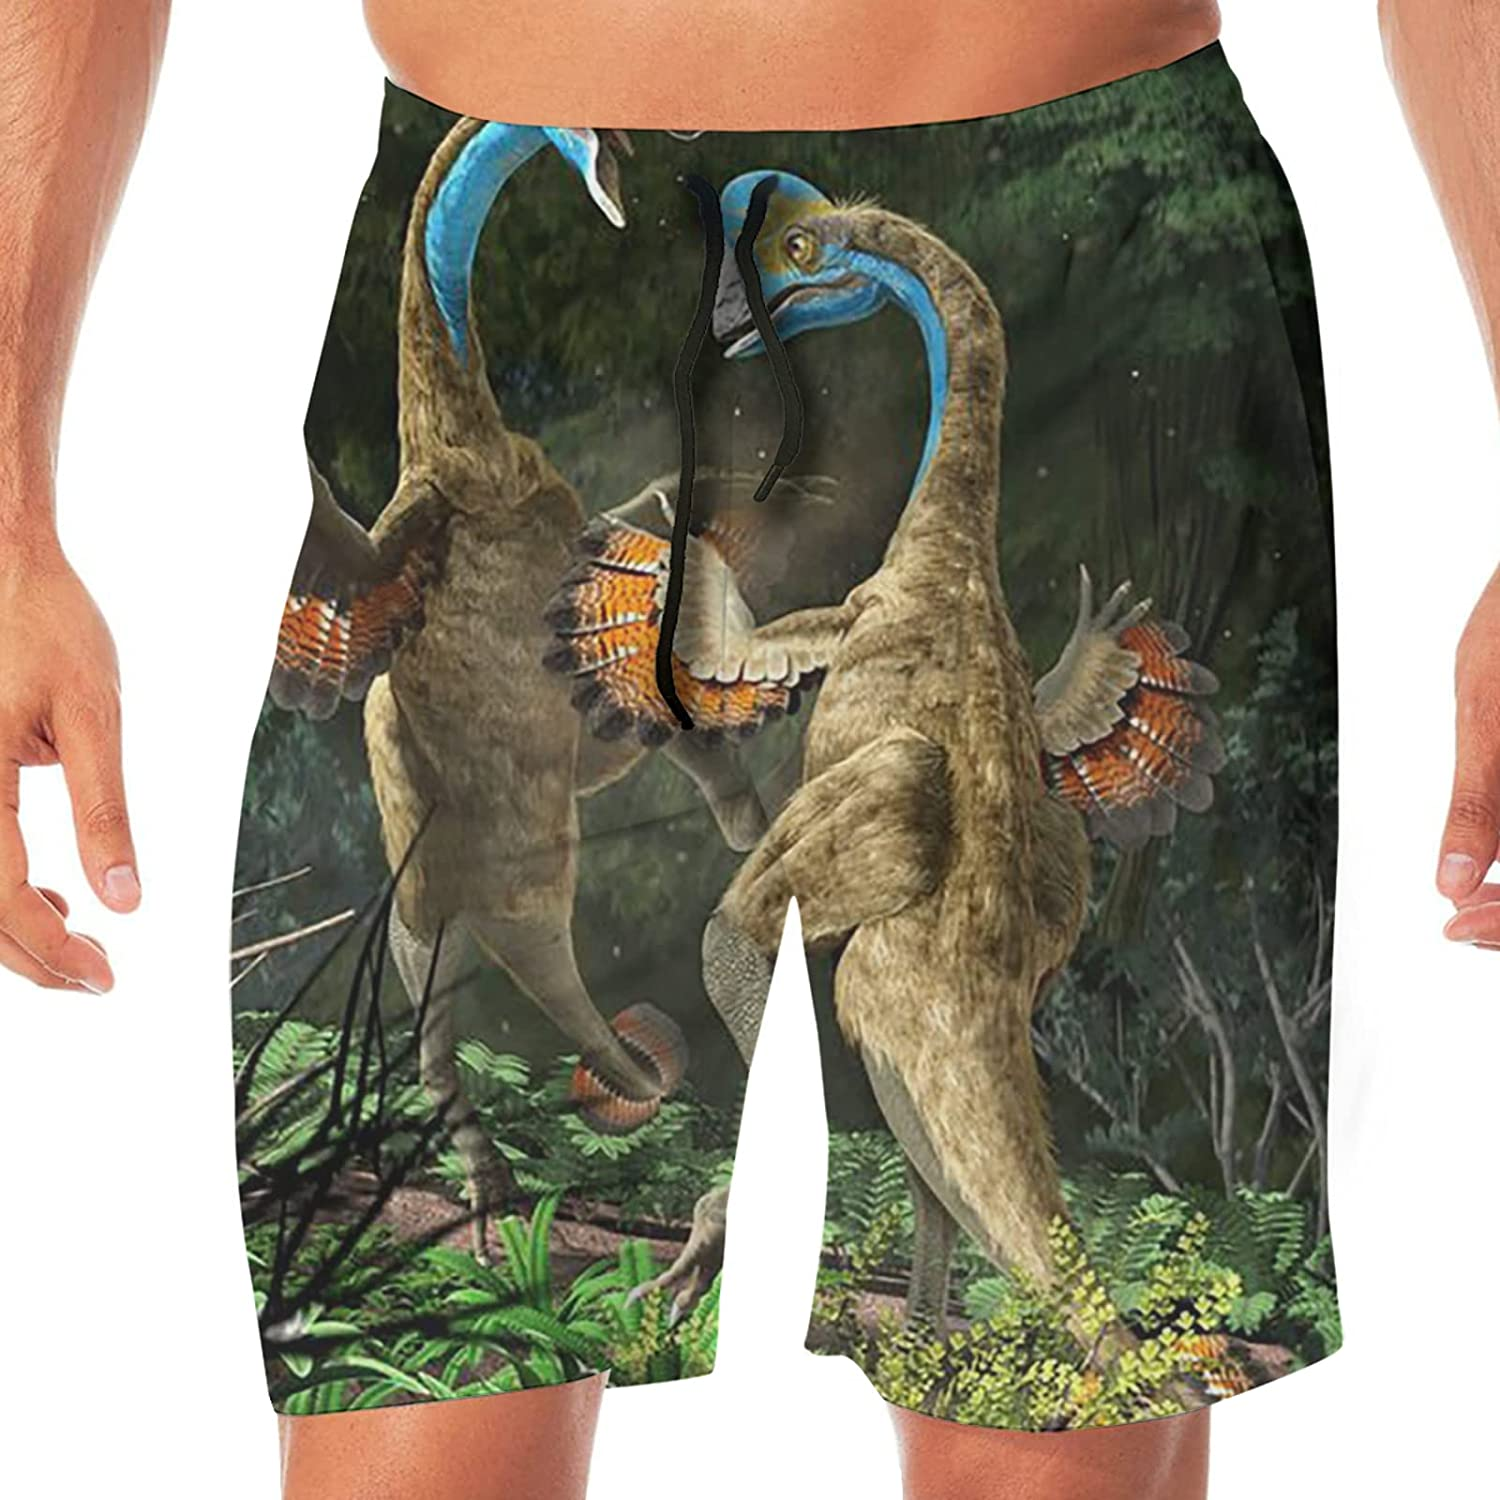 PEKIVIDE Men's Forest Feathered Dinosaurs Peacock Battle Swim Trunks Quick Dry Board Shorts Swim with Pockets Beach Bathing Suits